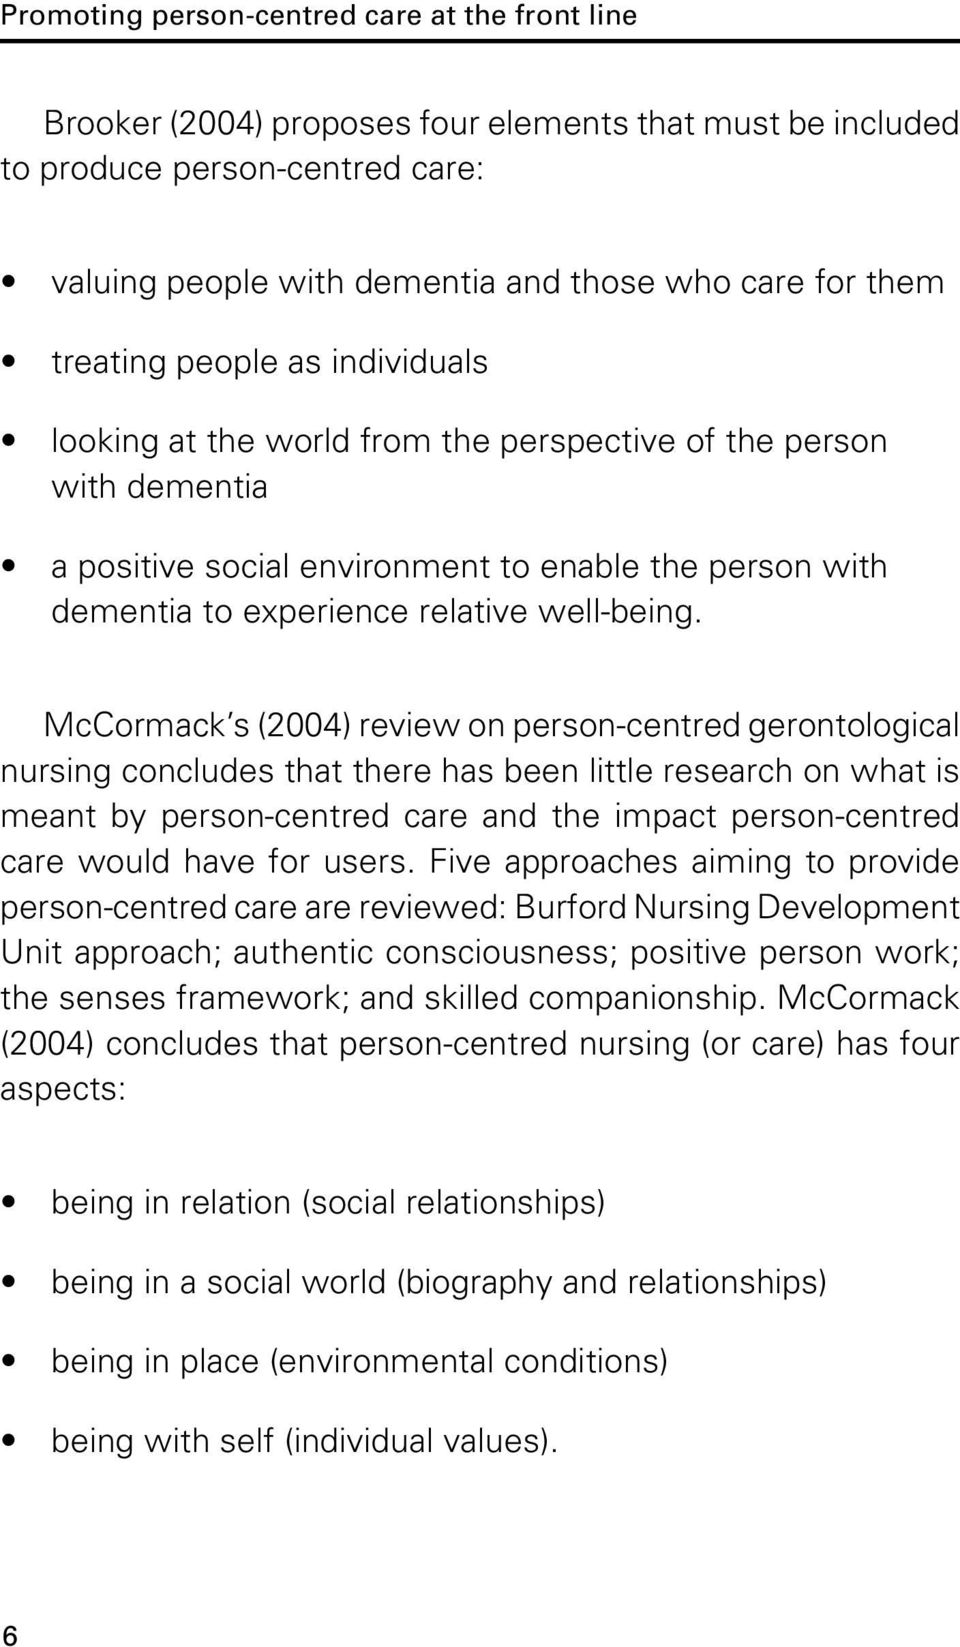 McCormack s (2004) review on person-centred gerontological nursing concludes that there has been little research on what is meant by person-centred care and the impact person-centred care would have